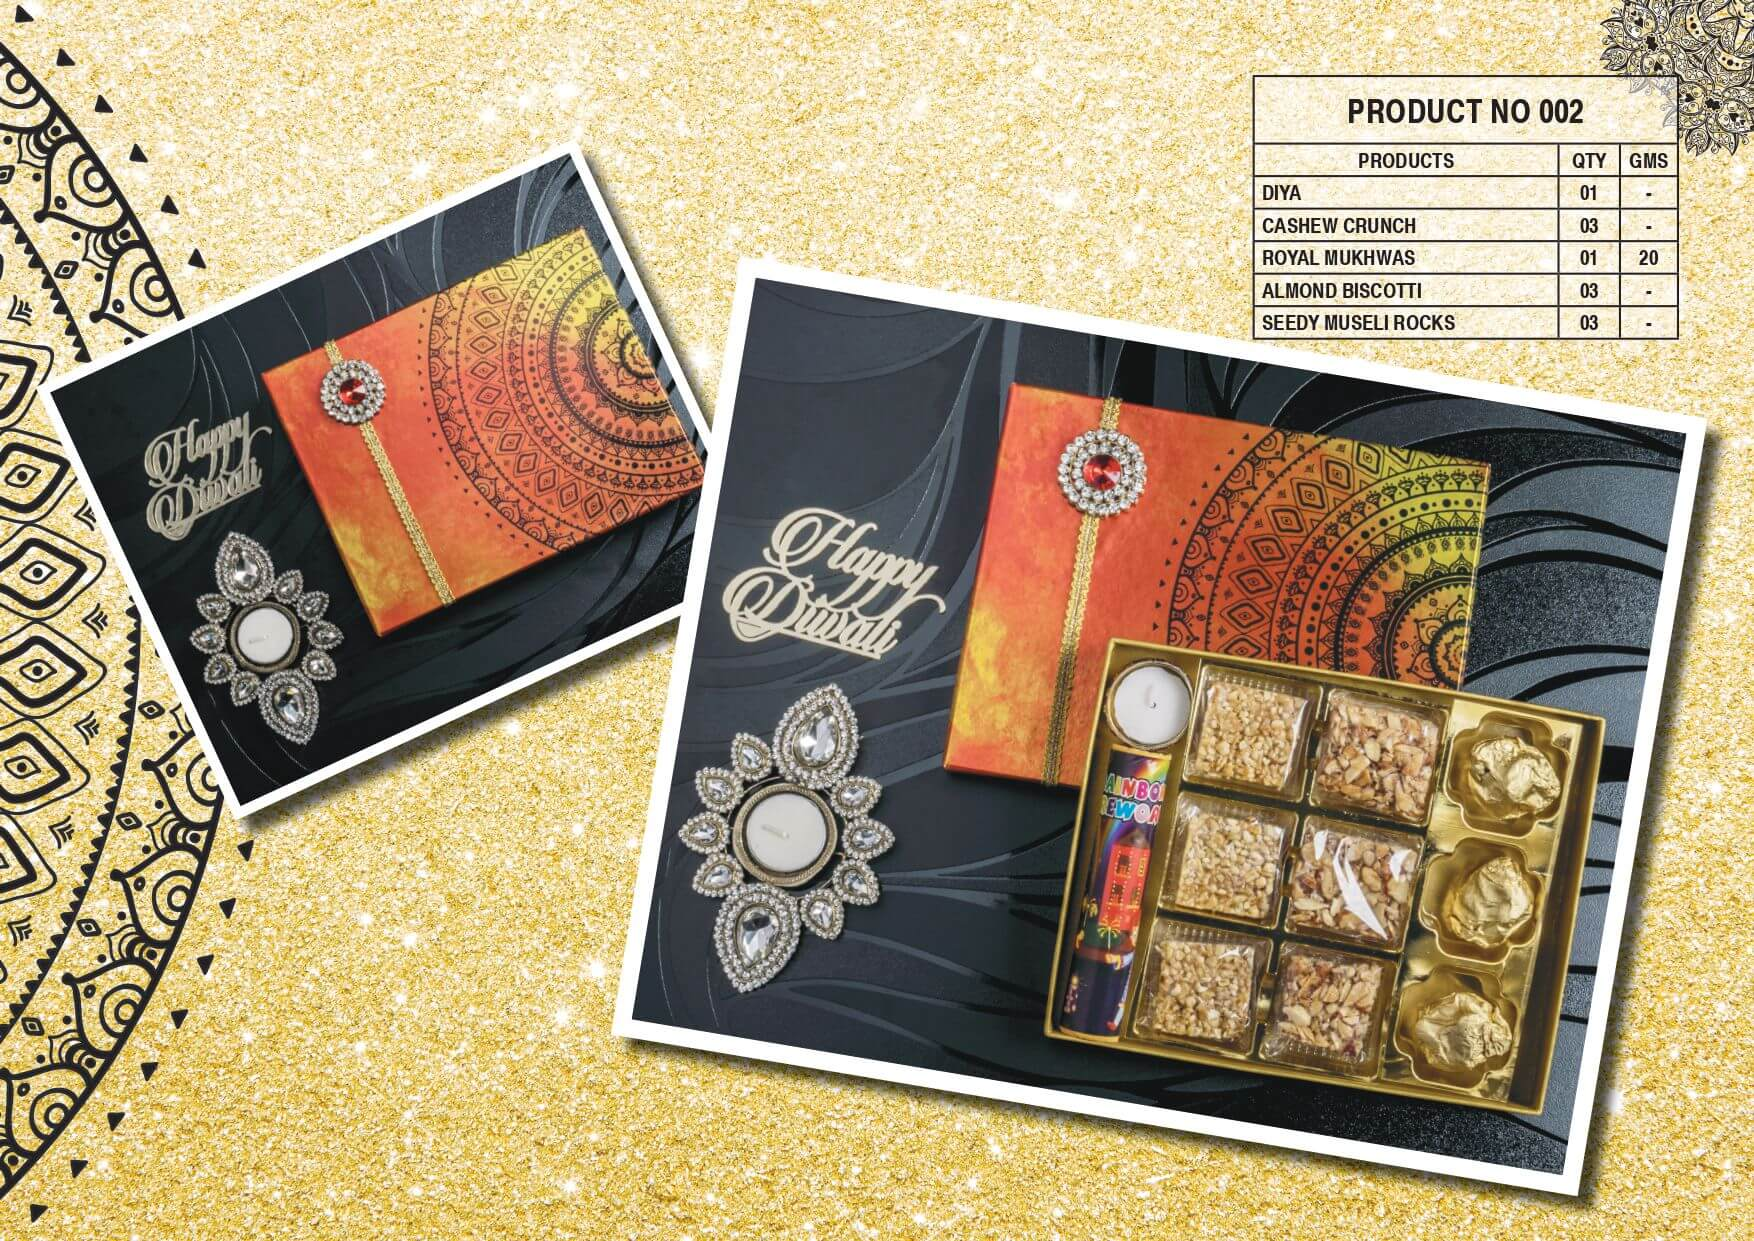 Diwali Corporate Gifts PRODUCT NO 002